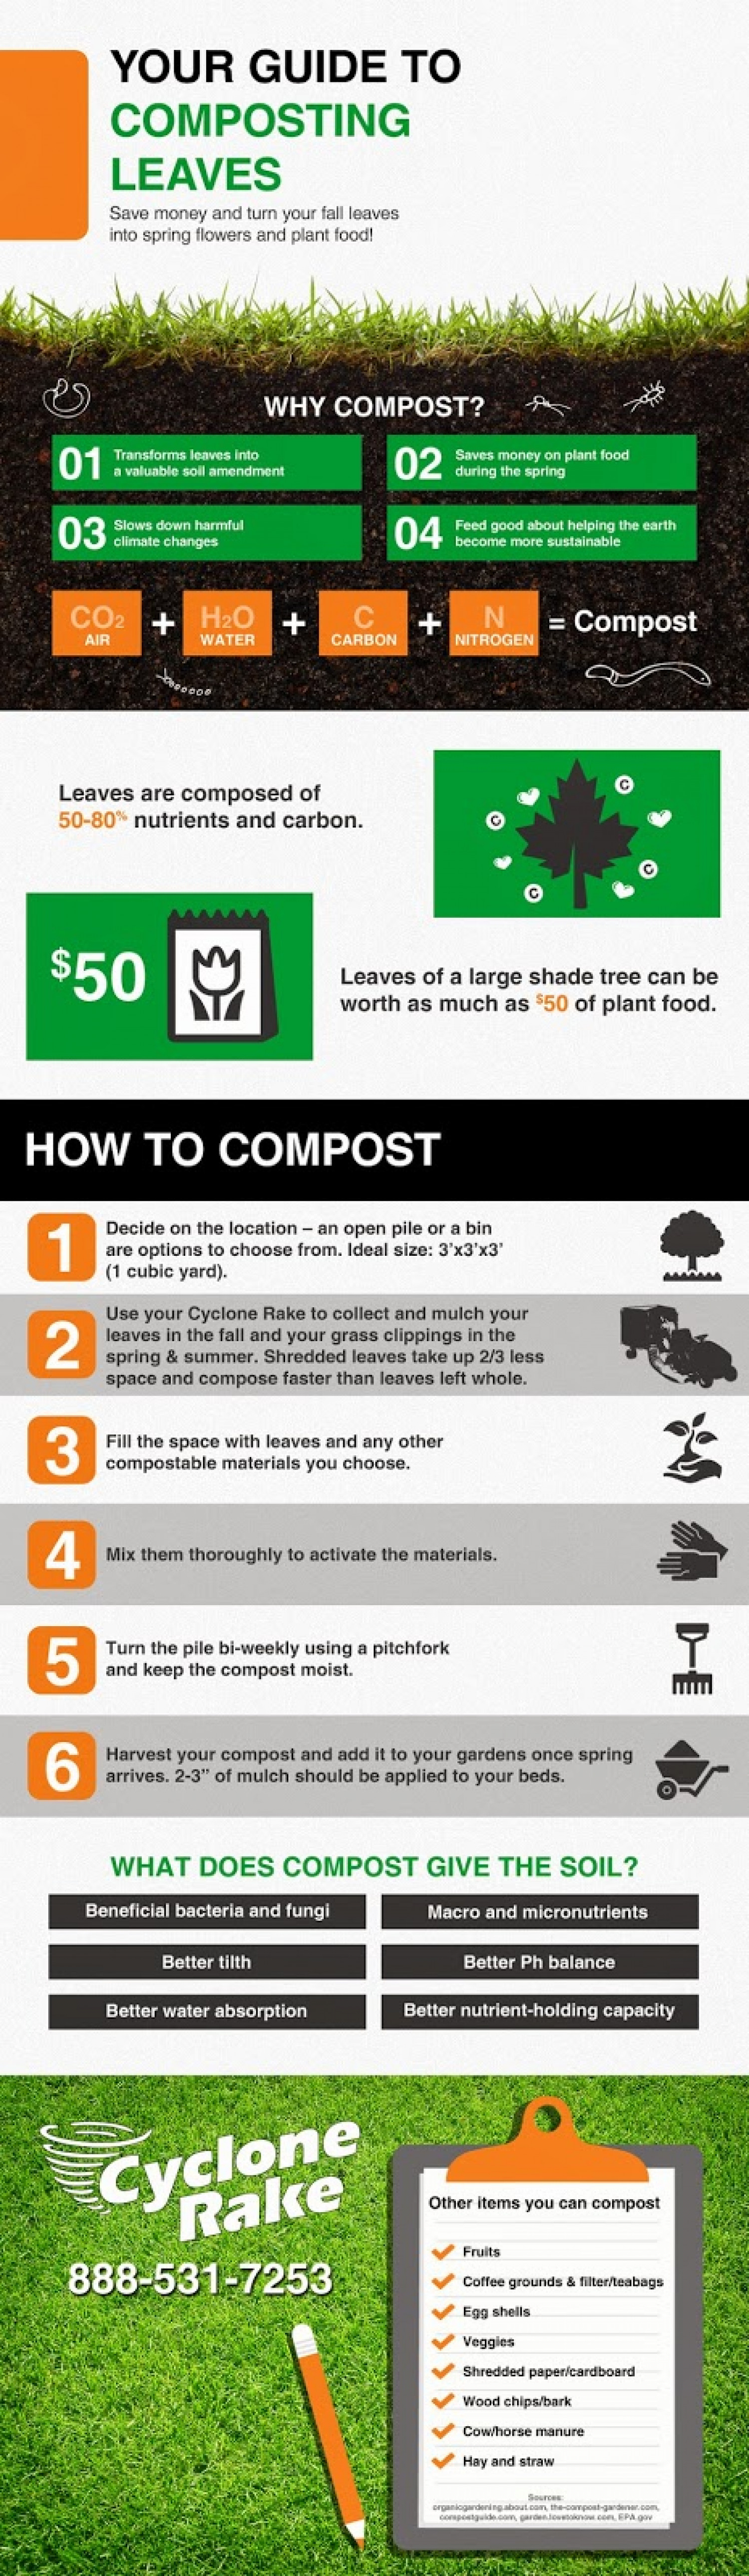 Your Guide to Composting Leaves Infographic